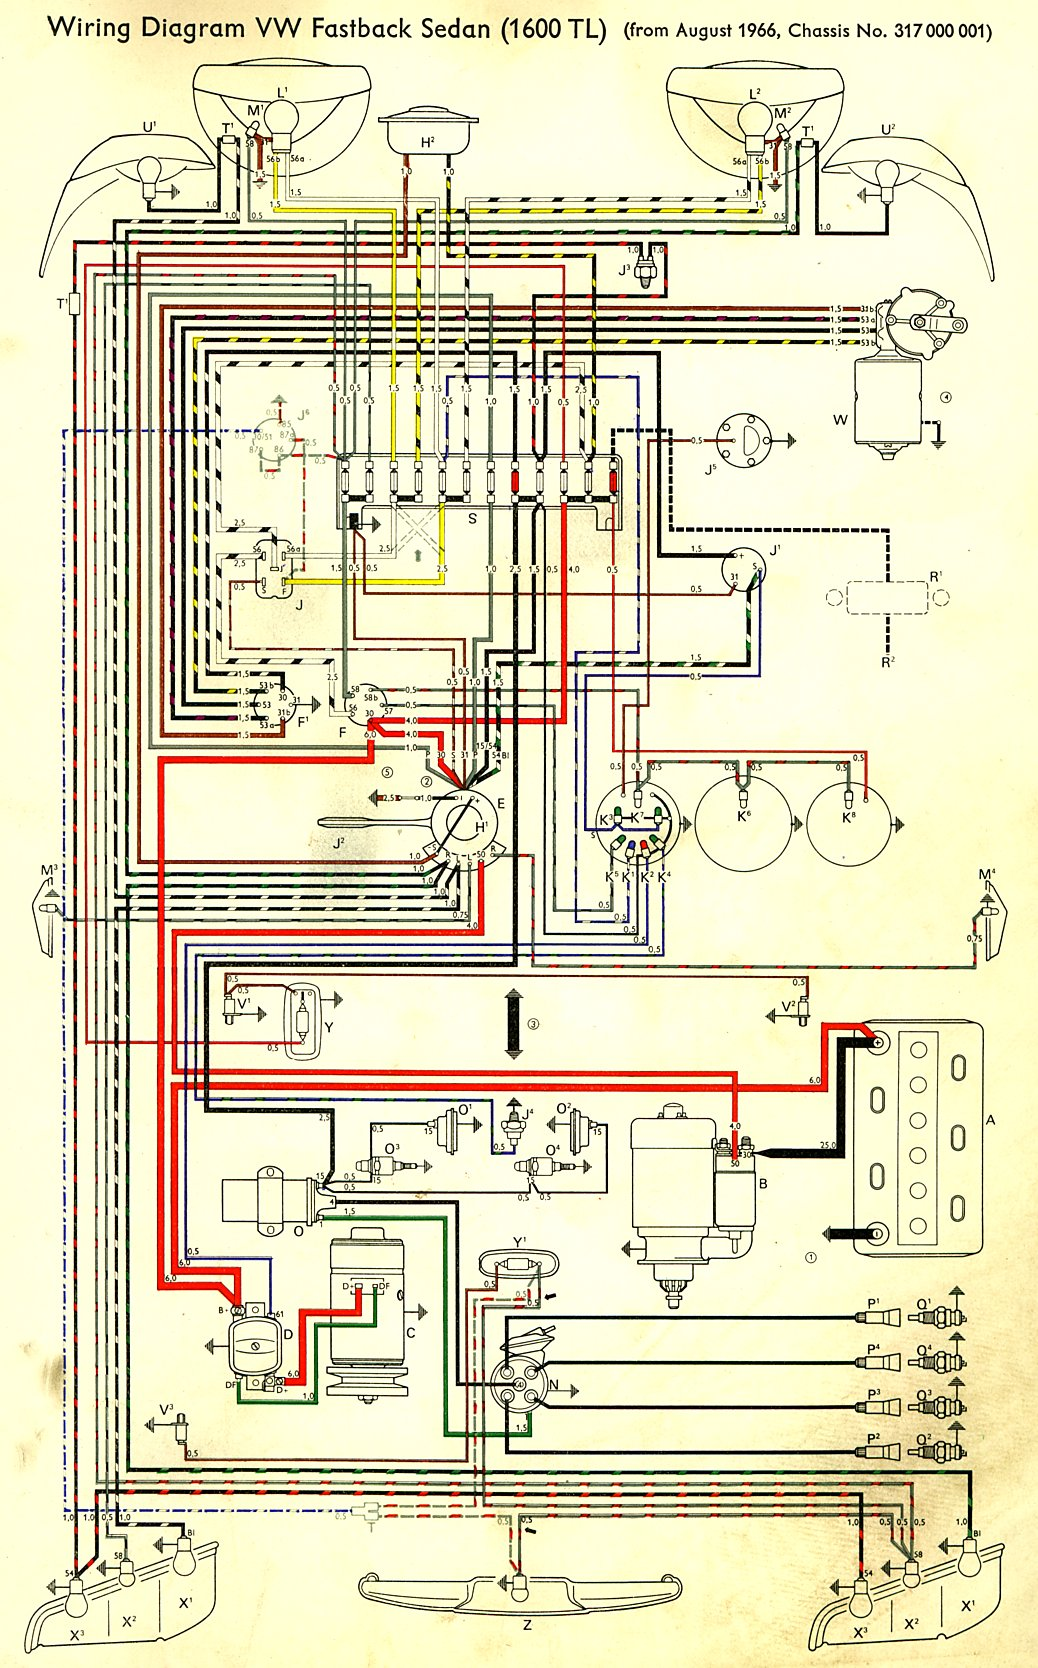 type3_1600TL_67 european wiring diagram hyundai sonata wiring diagram \u2022 free vw wiring diagram symbols at soozxer.org